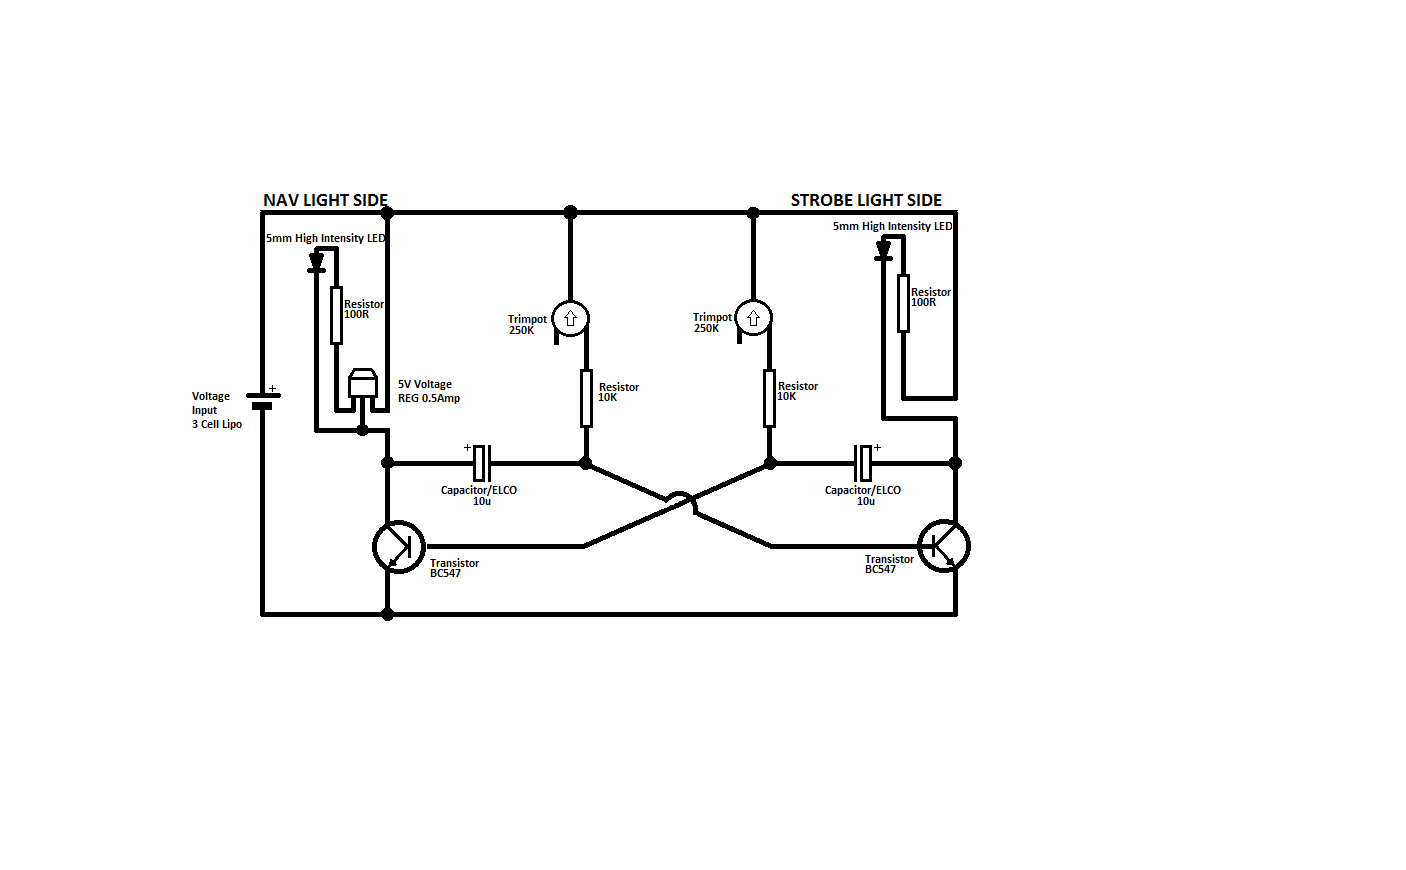 wiring diagram for whelen light bar wiring image whelen light bar wiring diagram whelen discover your wiring on wiring diagram for whelen light bar